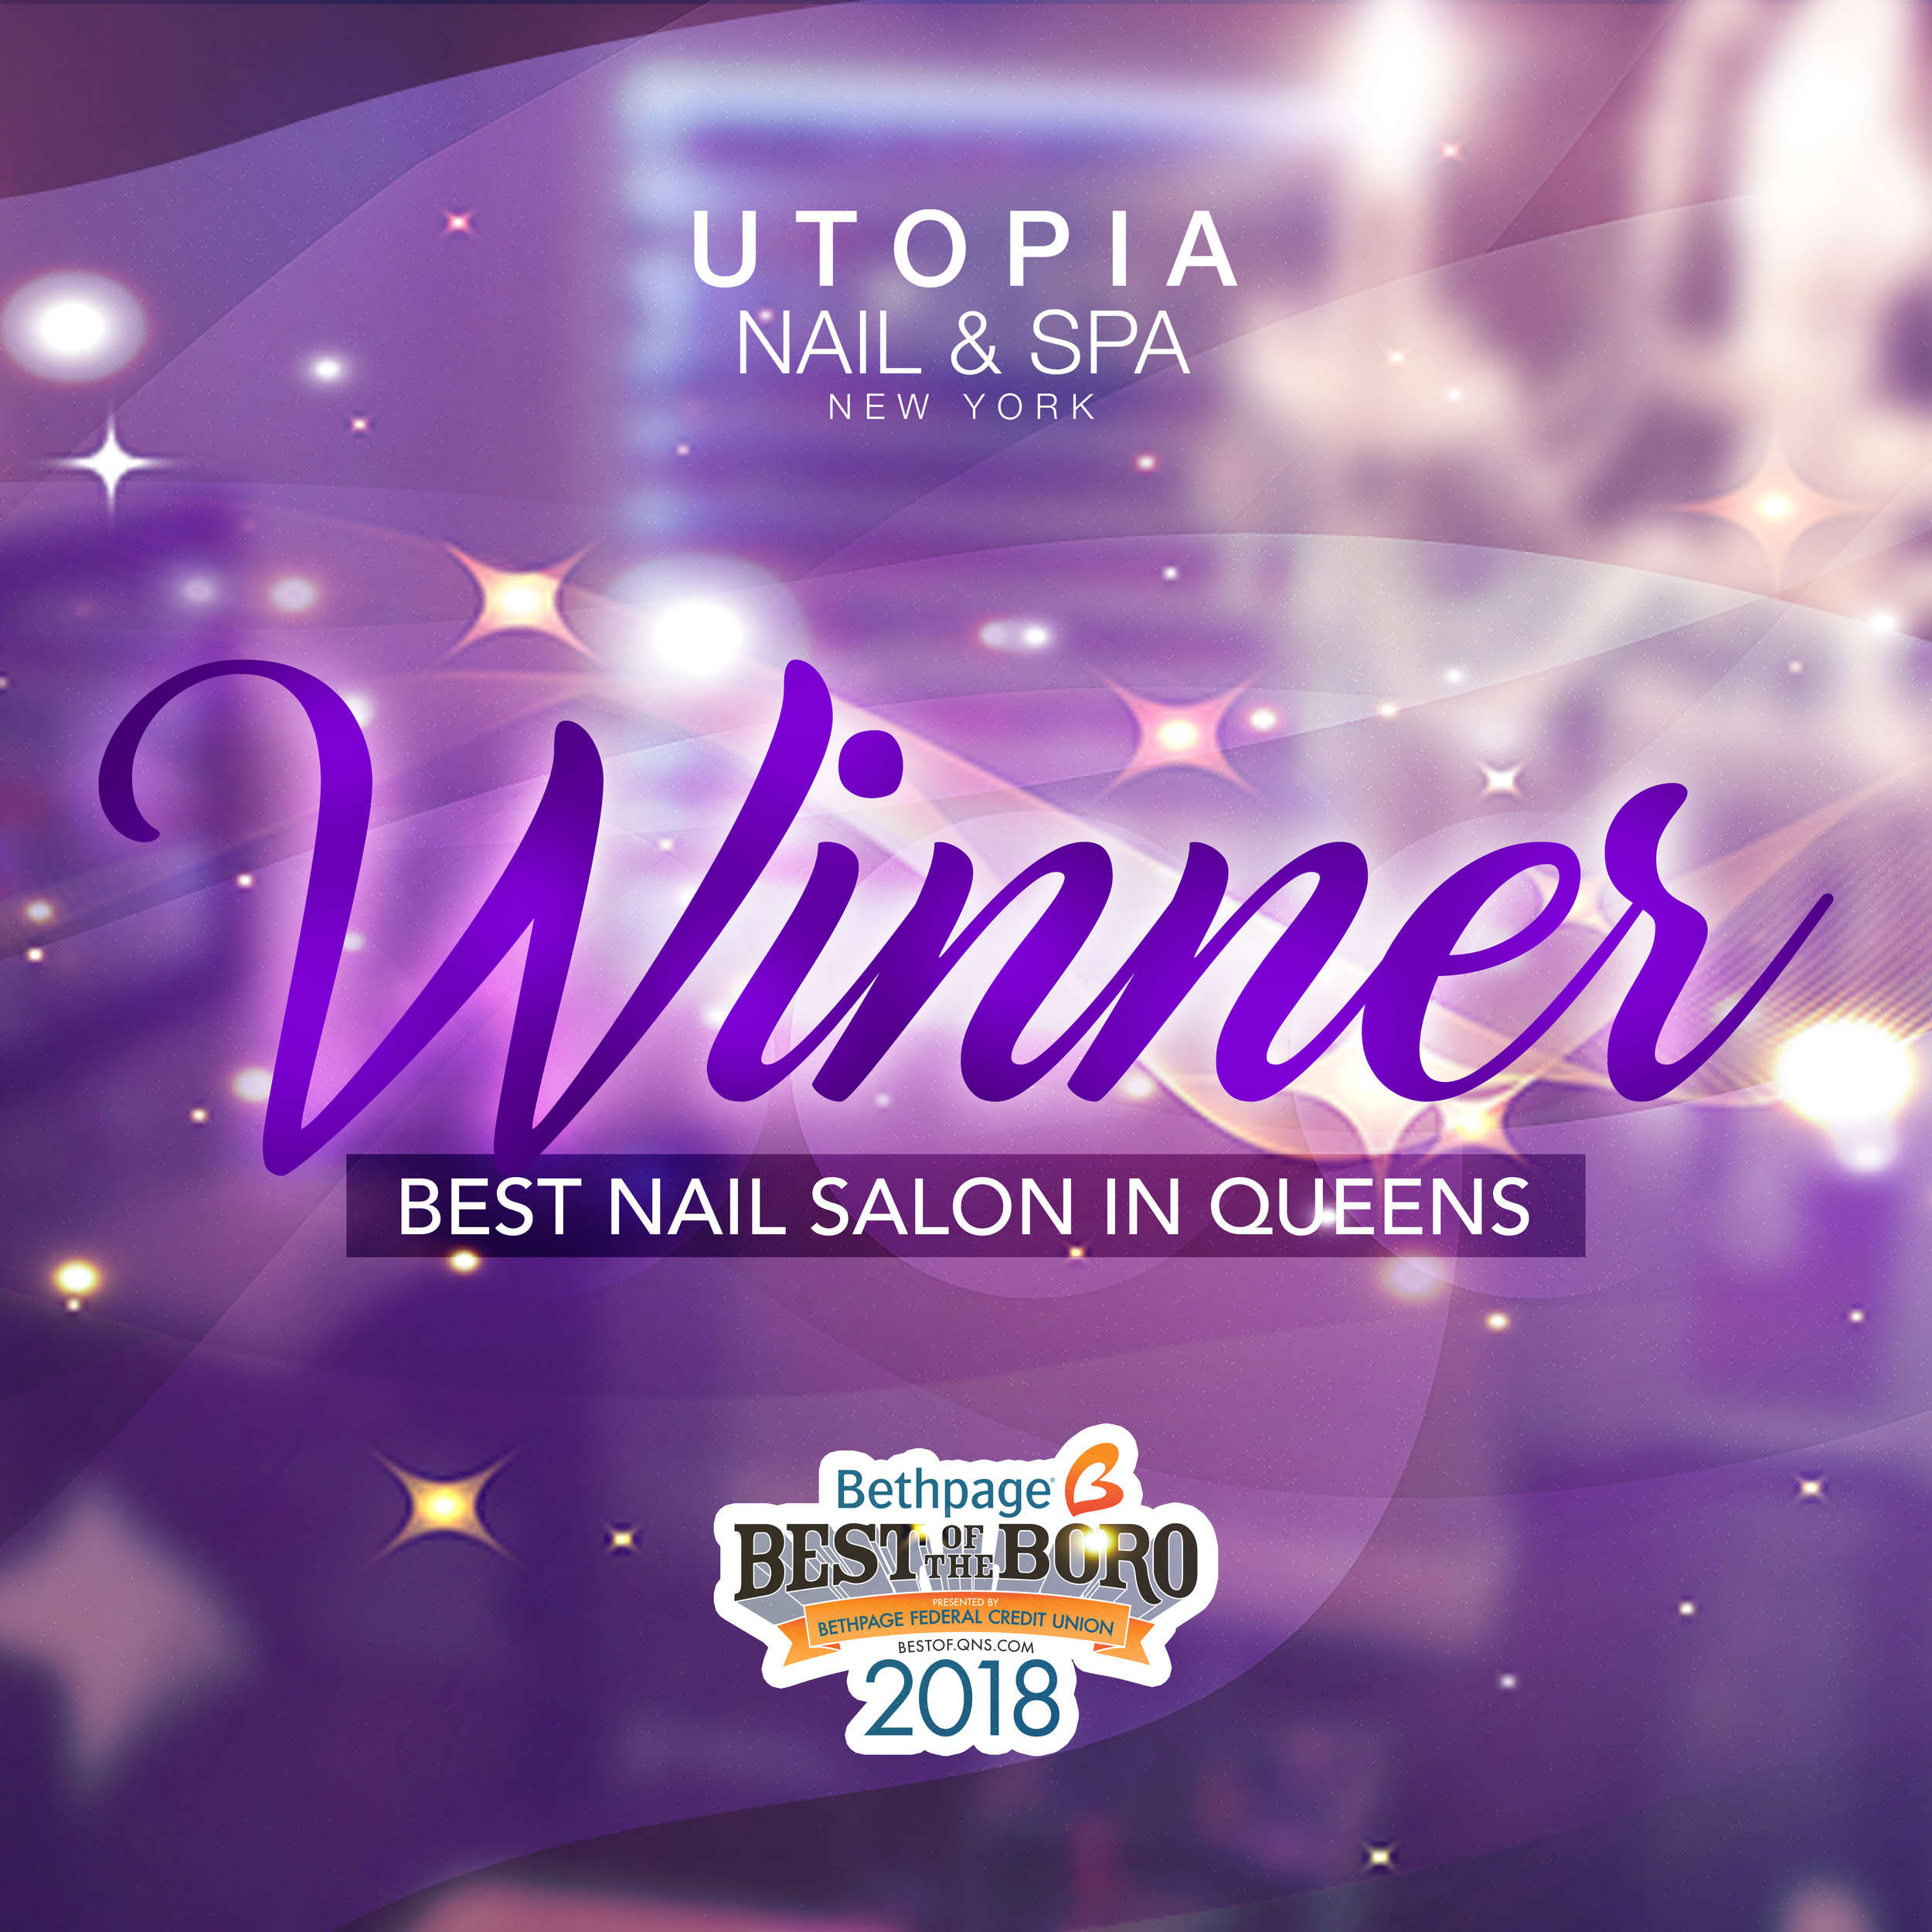 2018 WINNER : UTOPIA NAIL & SPA NEW YORK : BEST NAIL SALON IN QUEENS